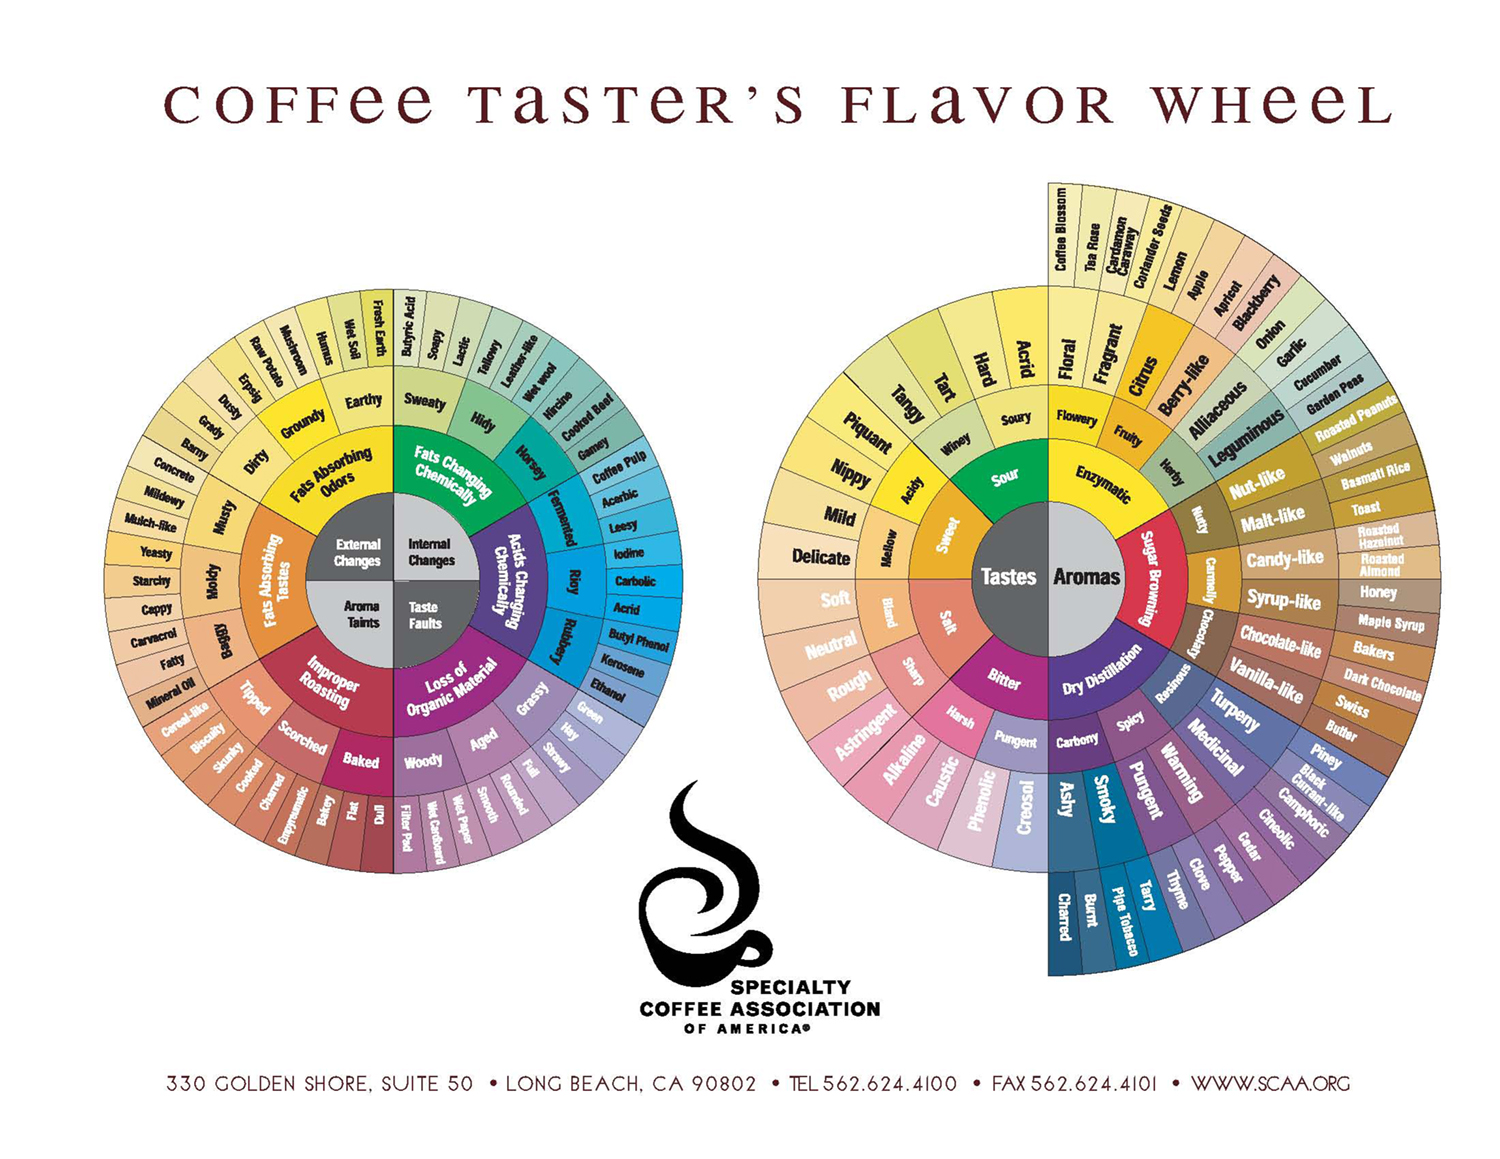 The SCAA Coffee Taster's Flavour Wheel